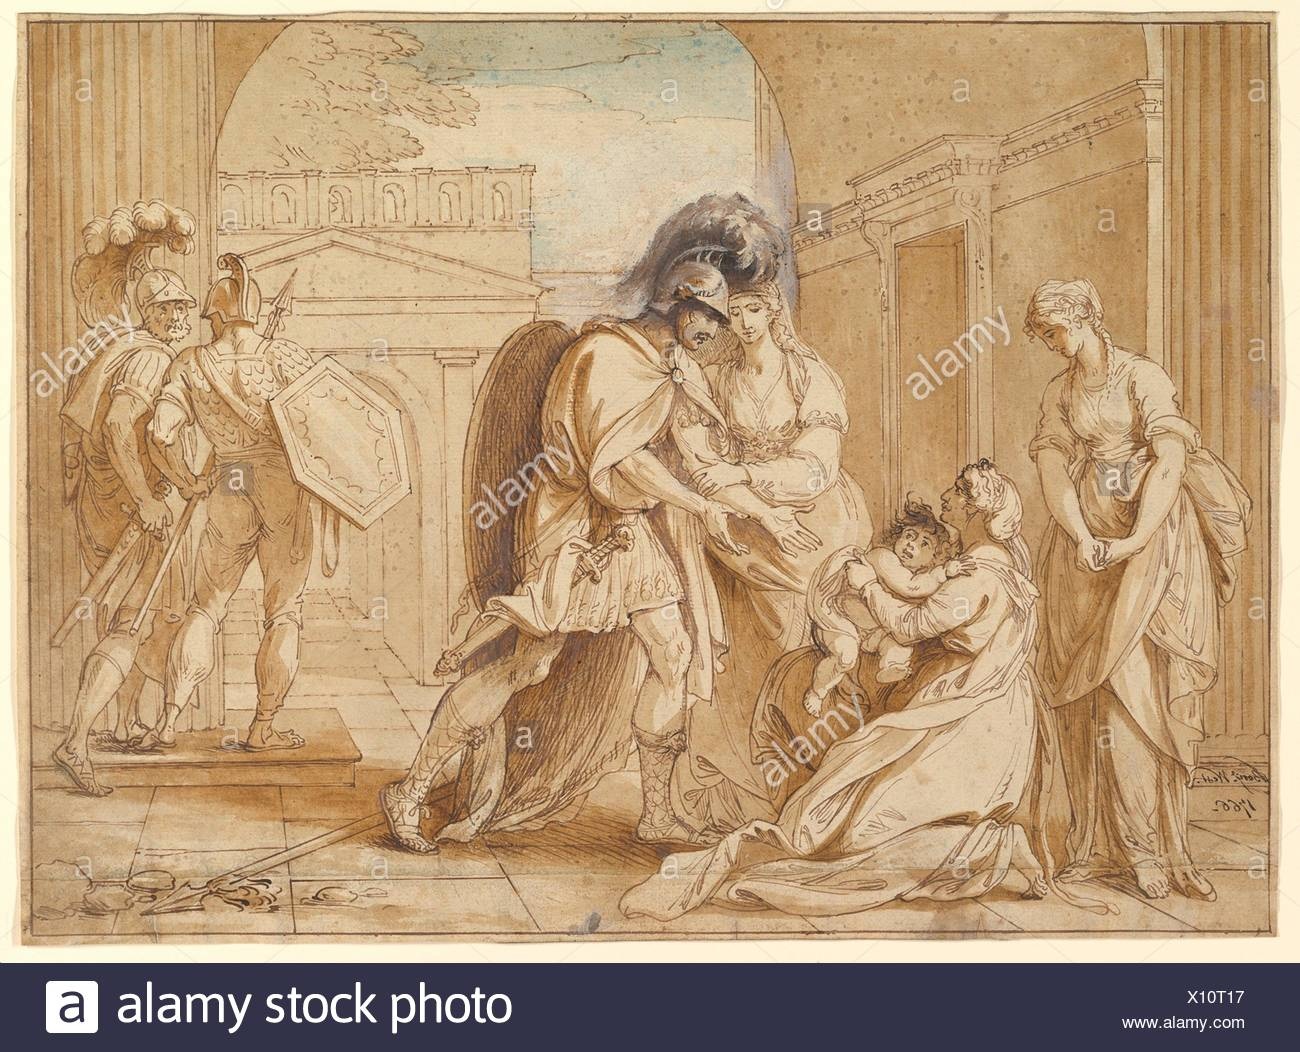 Hector taking leave of Andromache: the Fright of Astyanax. Artist: Benjamin West (American, Swarthmore, Pennsylvania 1738-1820 London); Date: 1766; - Stock Image